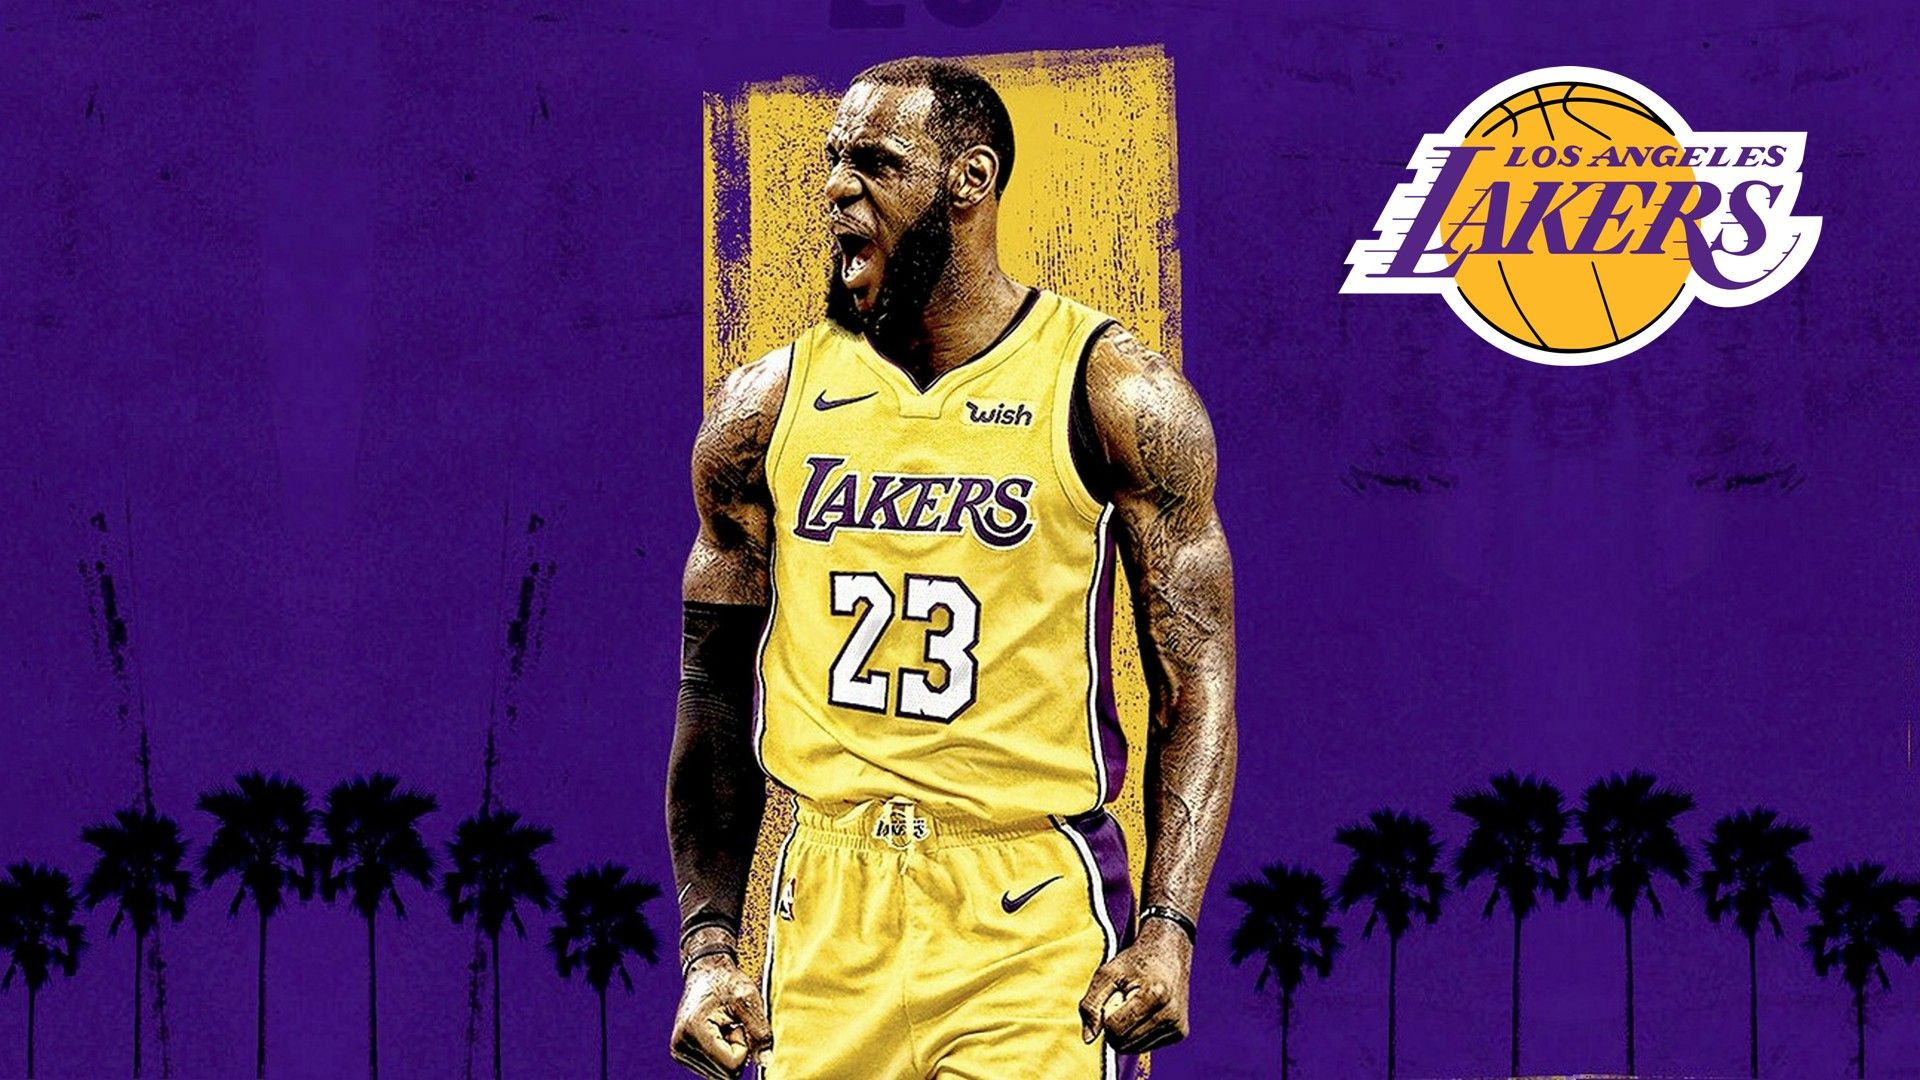 Lebron James Lakers Desktop Wallpapers In 2020 Lebron James Lakers Lebron James Wallpapers Lebron James